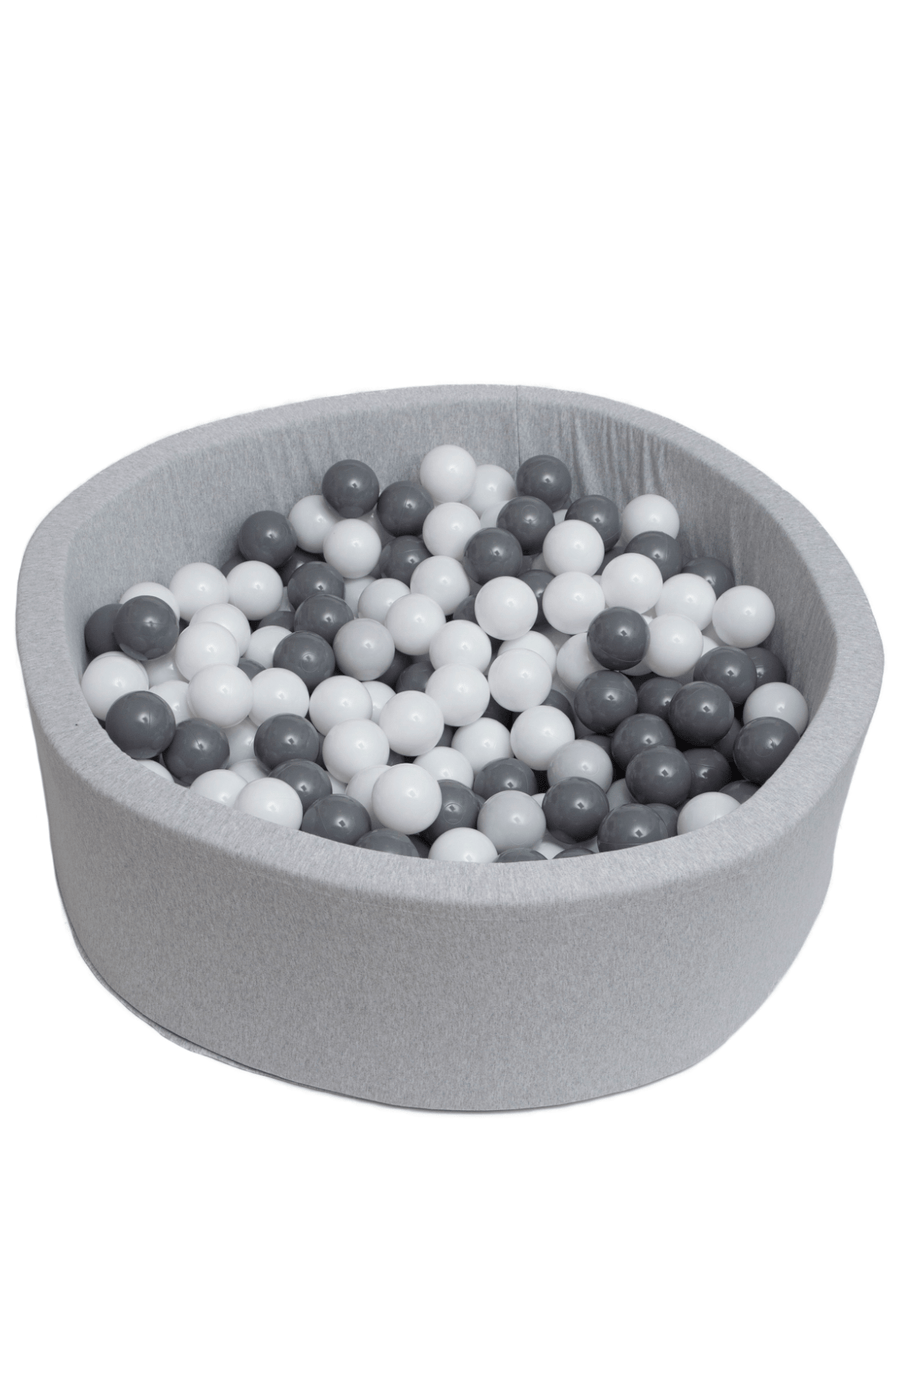 Mini Be Ball Pit - Grey/White In Grey Pit